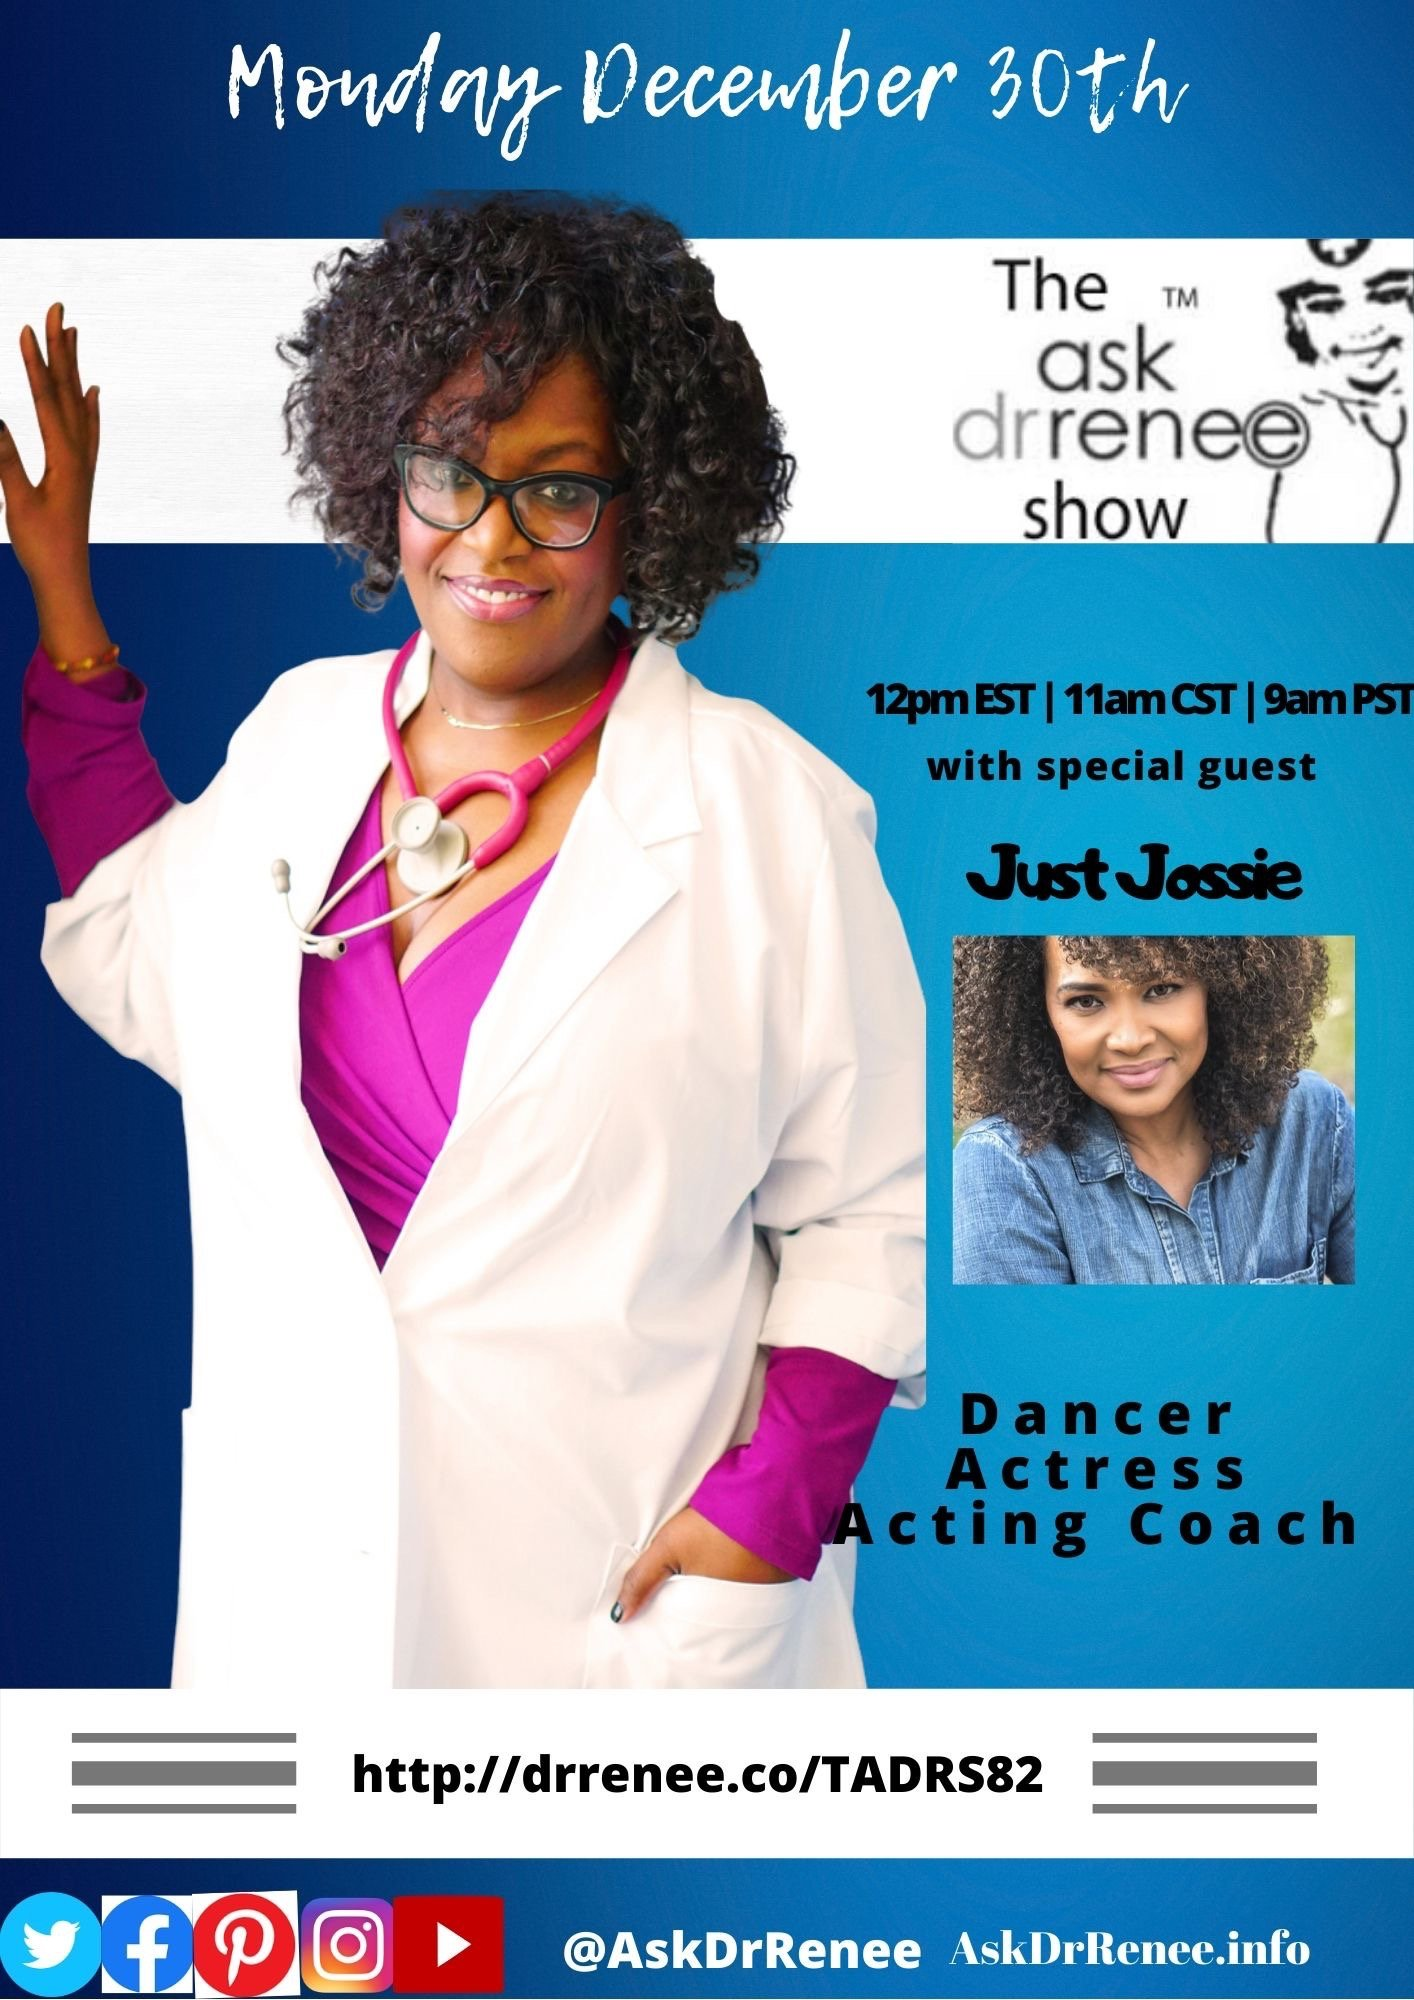 Ask Dr. Renee Show,Talk Show Host,Oprah Winfrey,talk show,Jossie Harris,in living color,Fly girls,Dancer,Jossie Harris Thacker,music,dancer,hiphop,Jennifer Lopez,acting coaching class,talk show hosts laughing, Jossie Harris, Dancer, Actress, Acting Coach, Fly Girl, In Living Color, The Ask Dr. Renee Show, Dr. Renee, Dr. Renee Matthews, Ask Dr. Renee